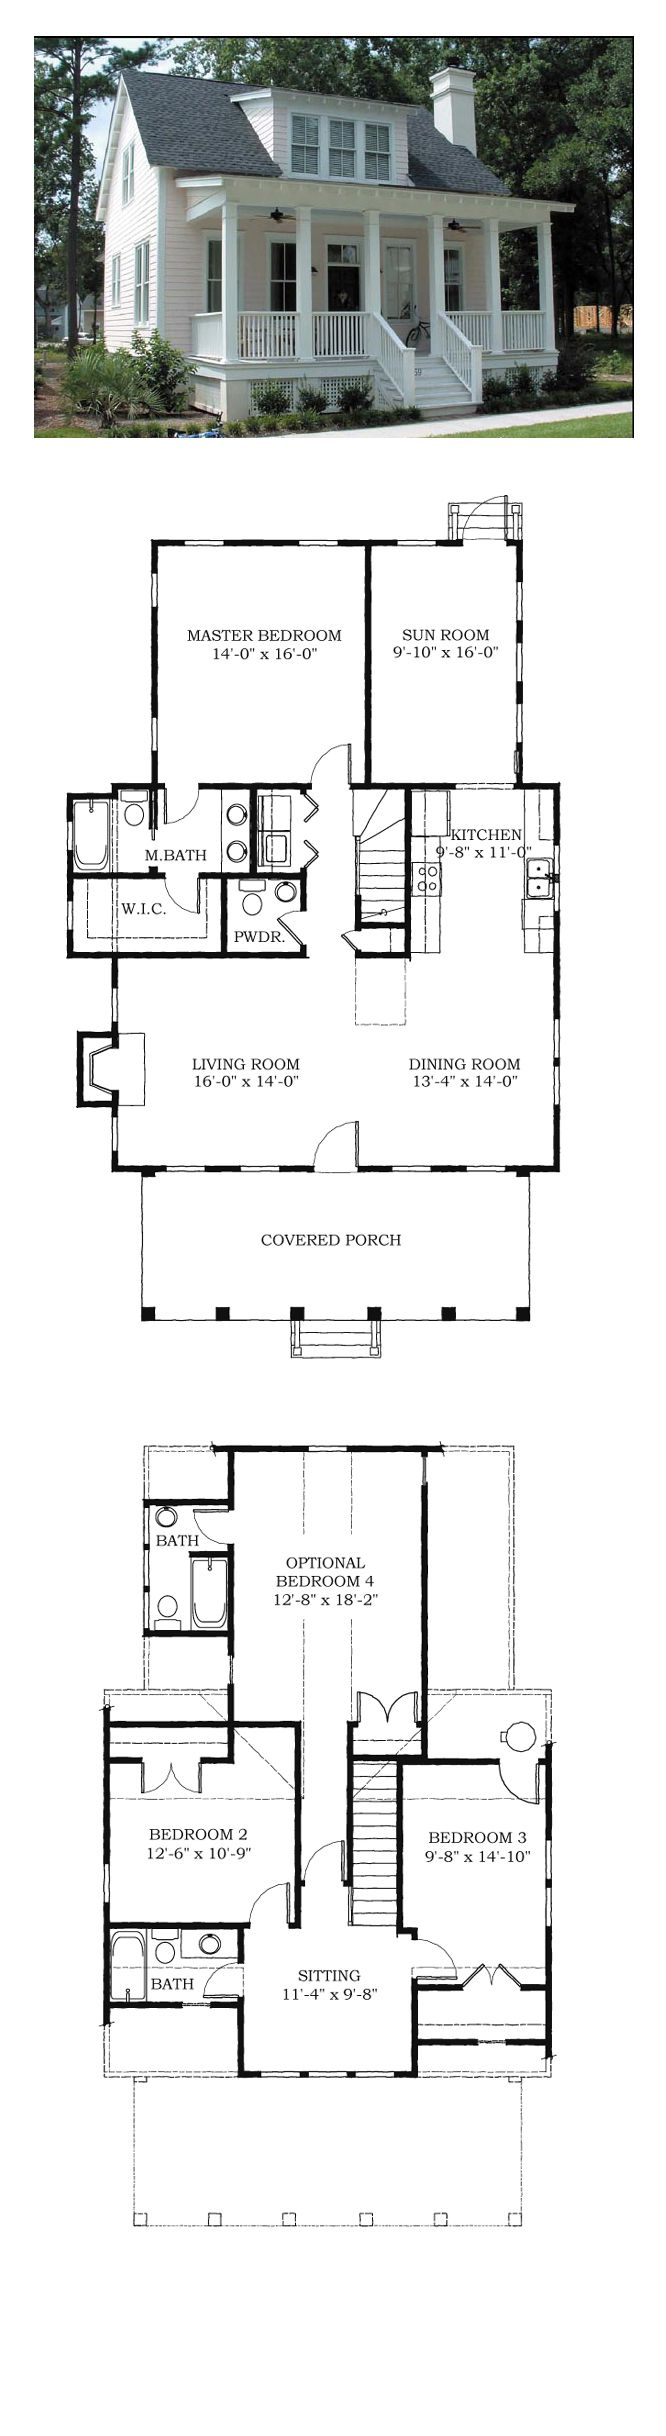 25 best ideas about small house plans on pinterest small home plans small house floor plans - Houses bedroom first floor fit needs ...